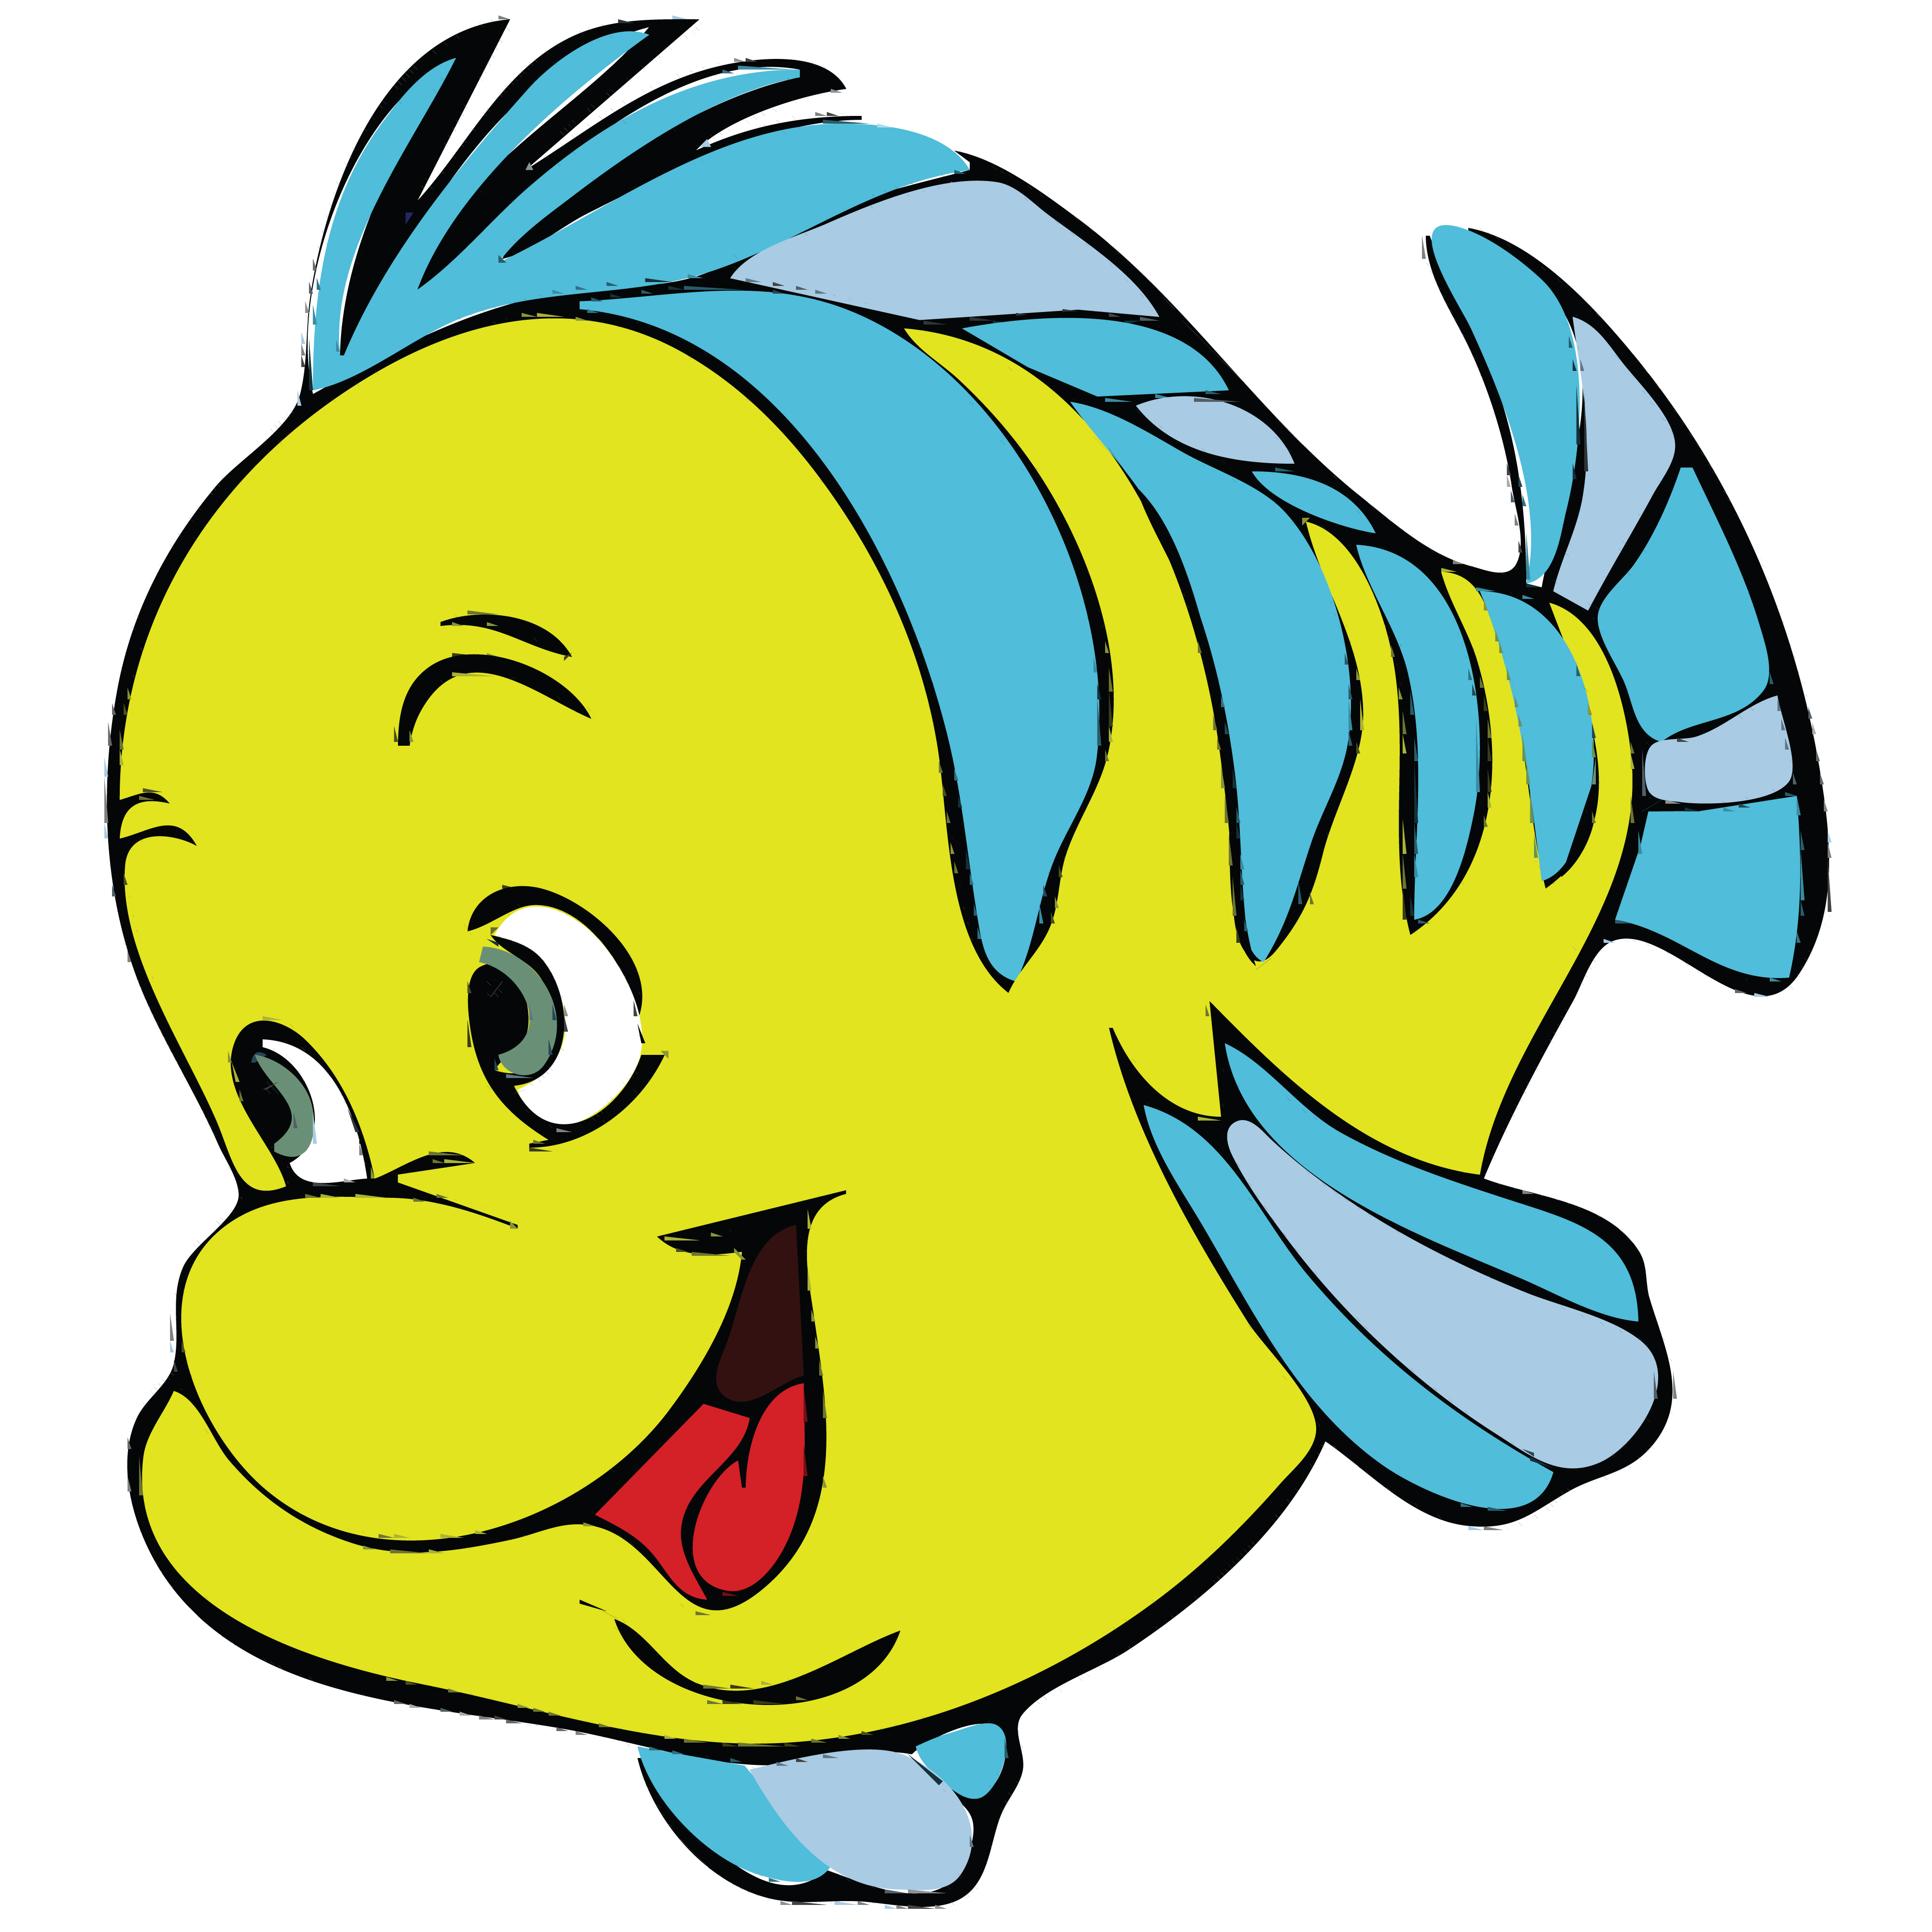 Free clipart of a fish from little mermaid flounder for The little mermaid fish